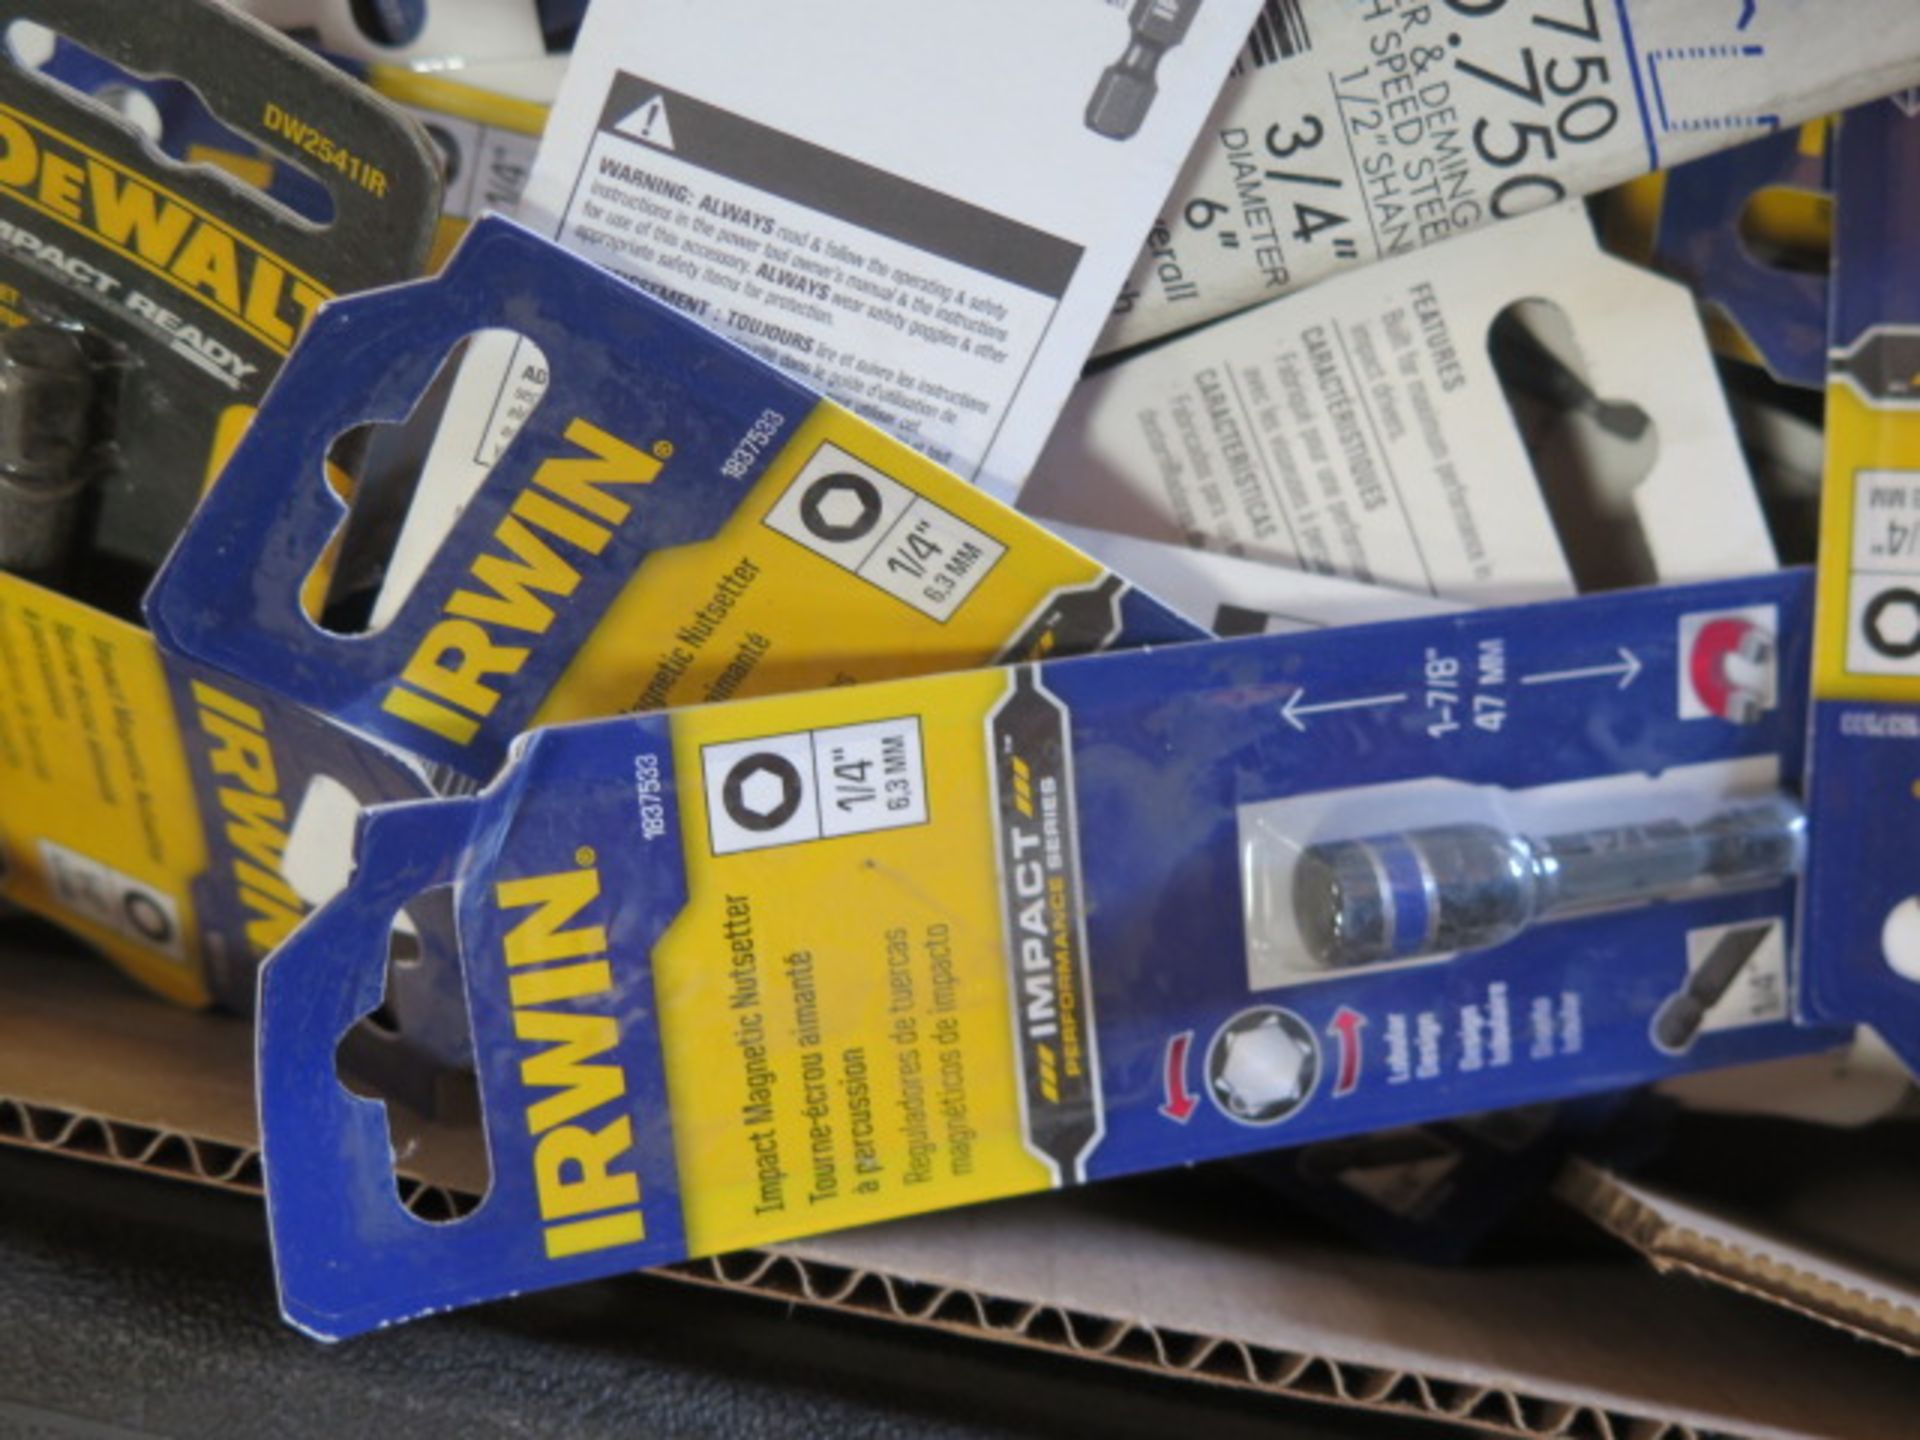 Irwin Magnetic Nut Setters (SOLD AS-IS - NO WARRANTY) - Image 4 of 4